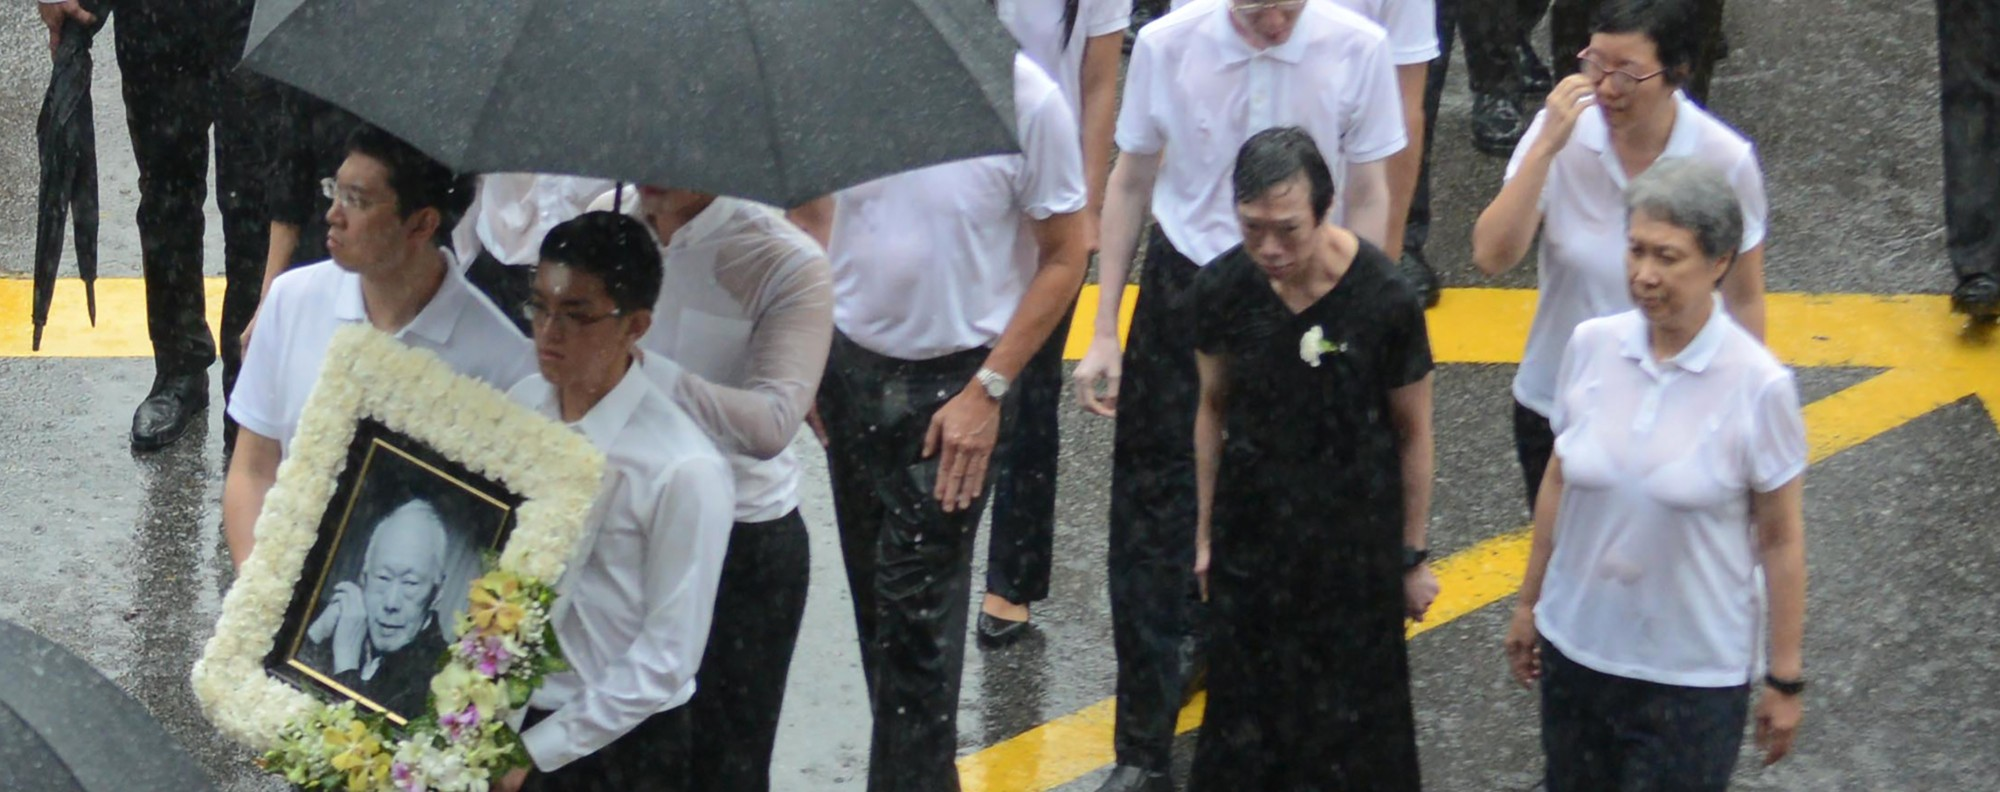 The family attends Lee Kuan Yew's funeral procession. Photo: AFP